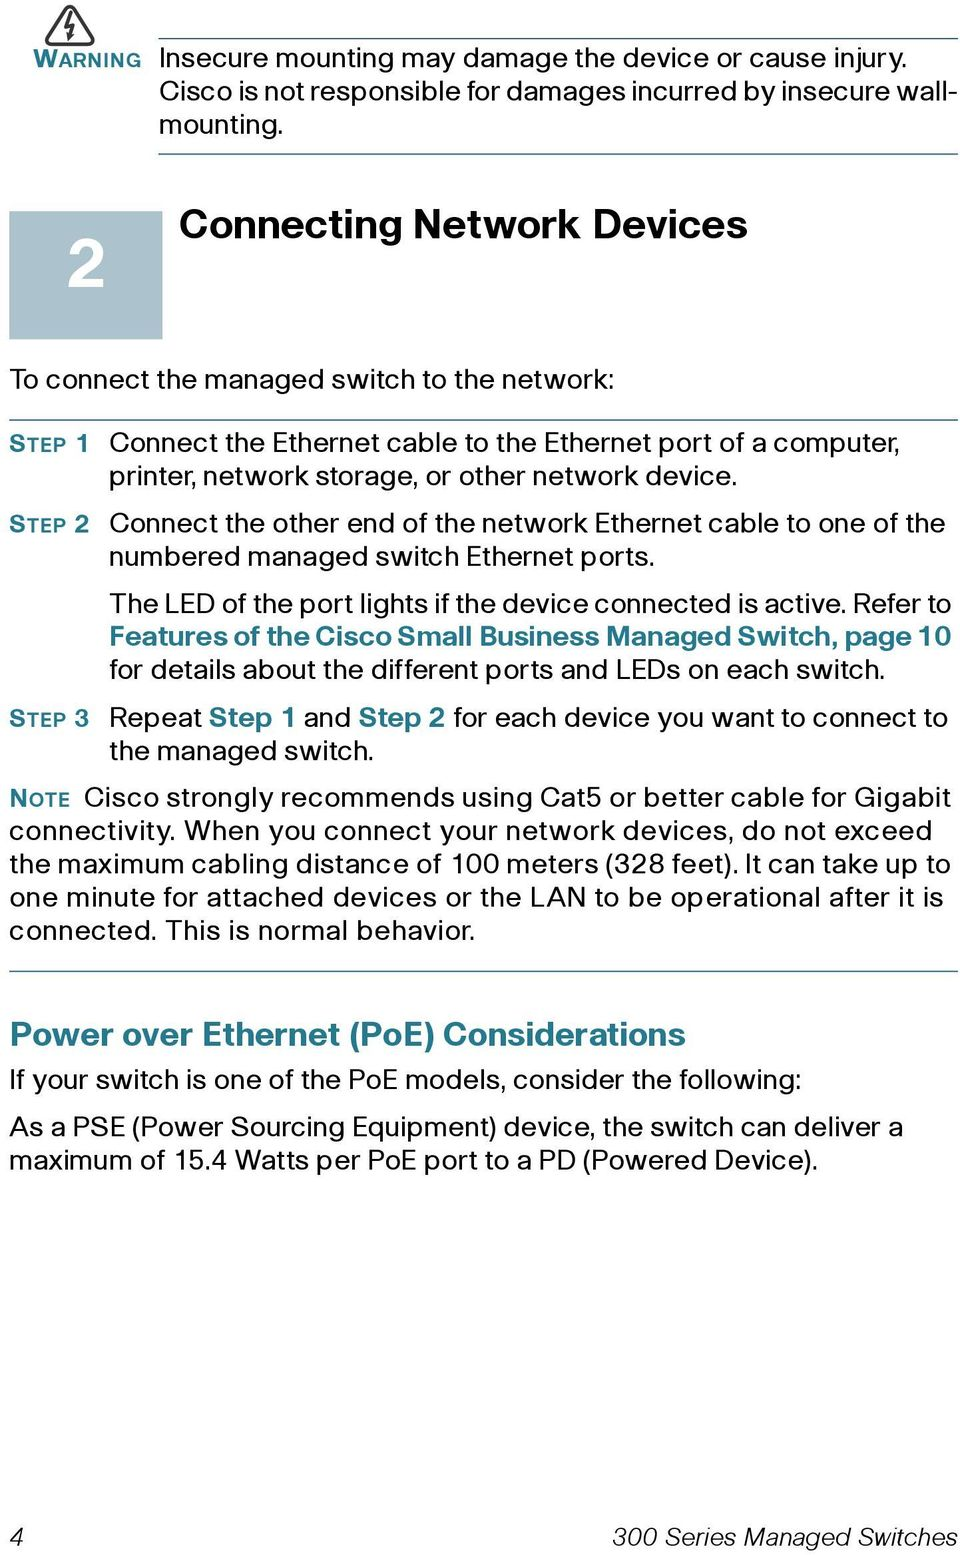 network device. Connect the other end of the network Ethernet cable to one of the numbered managed switch Ethernet ports. The LED of the port lights if the device connected is active.